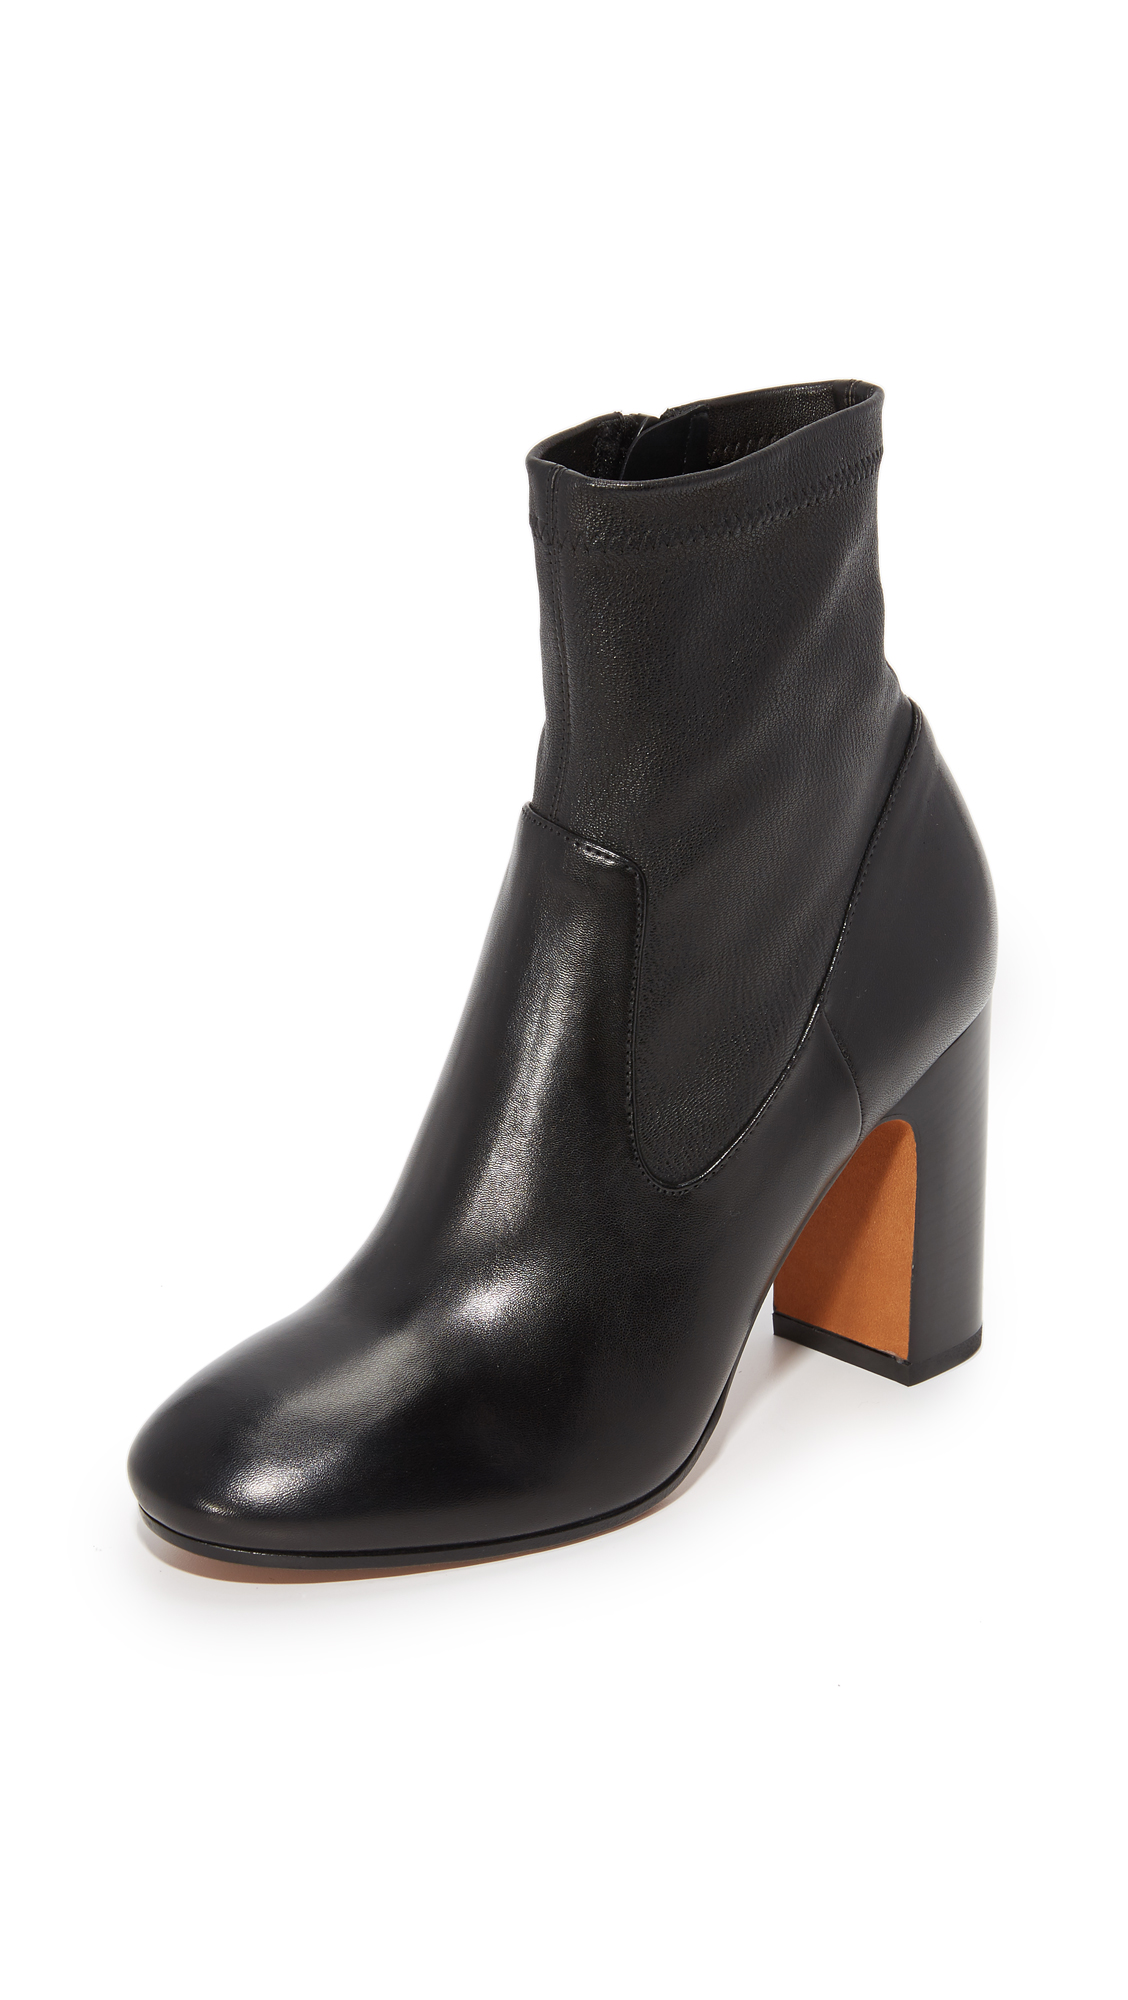 Refined Vince booties with a tonal shaft of stretch leather. Exposed side zip. Sculpted, stacked heel and leather sole. Leather: Cowhide. Made in Italy. This item cannot be gift boxed. Measurements Heel: 3.25in / 85mm. Available sizes: 5.5